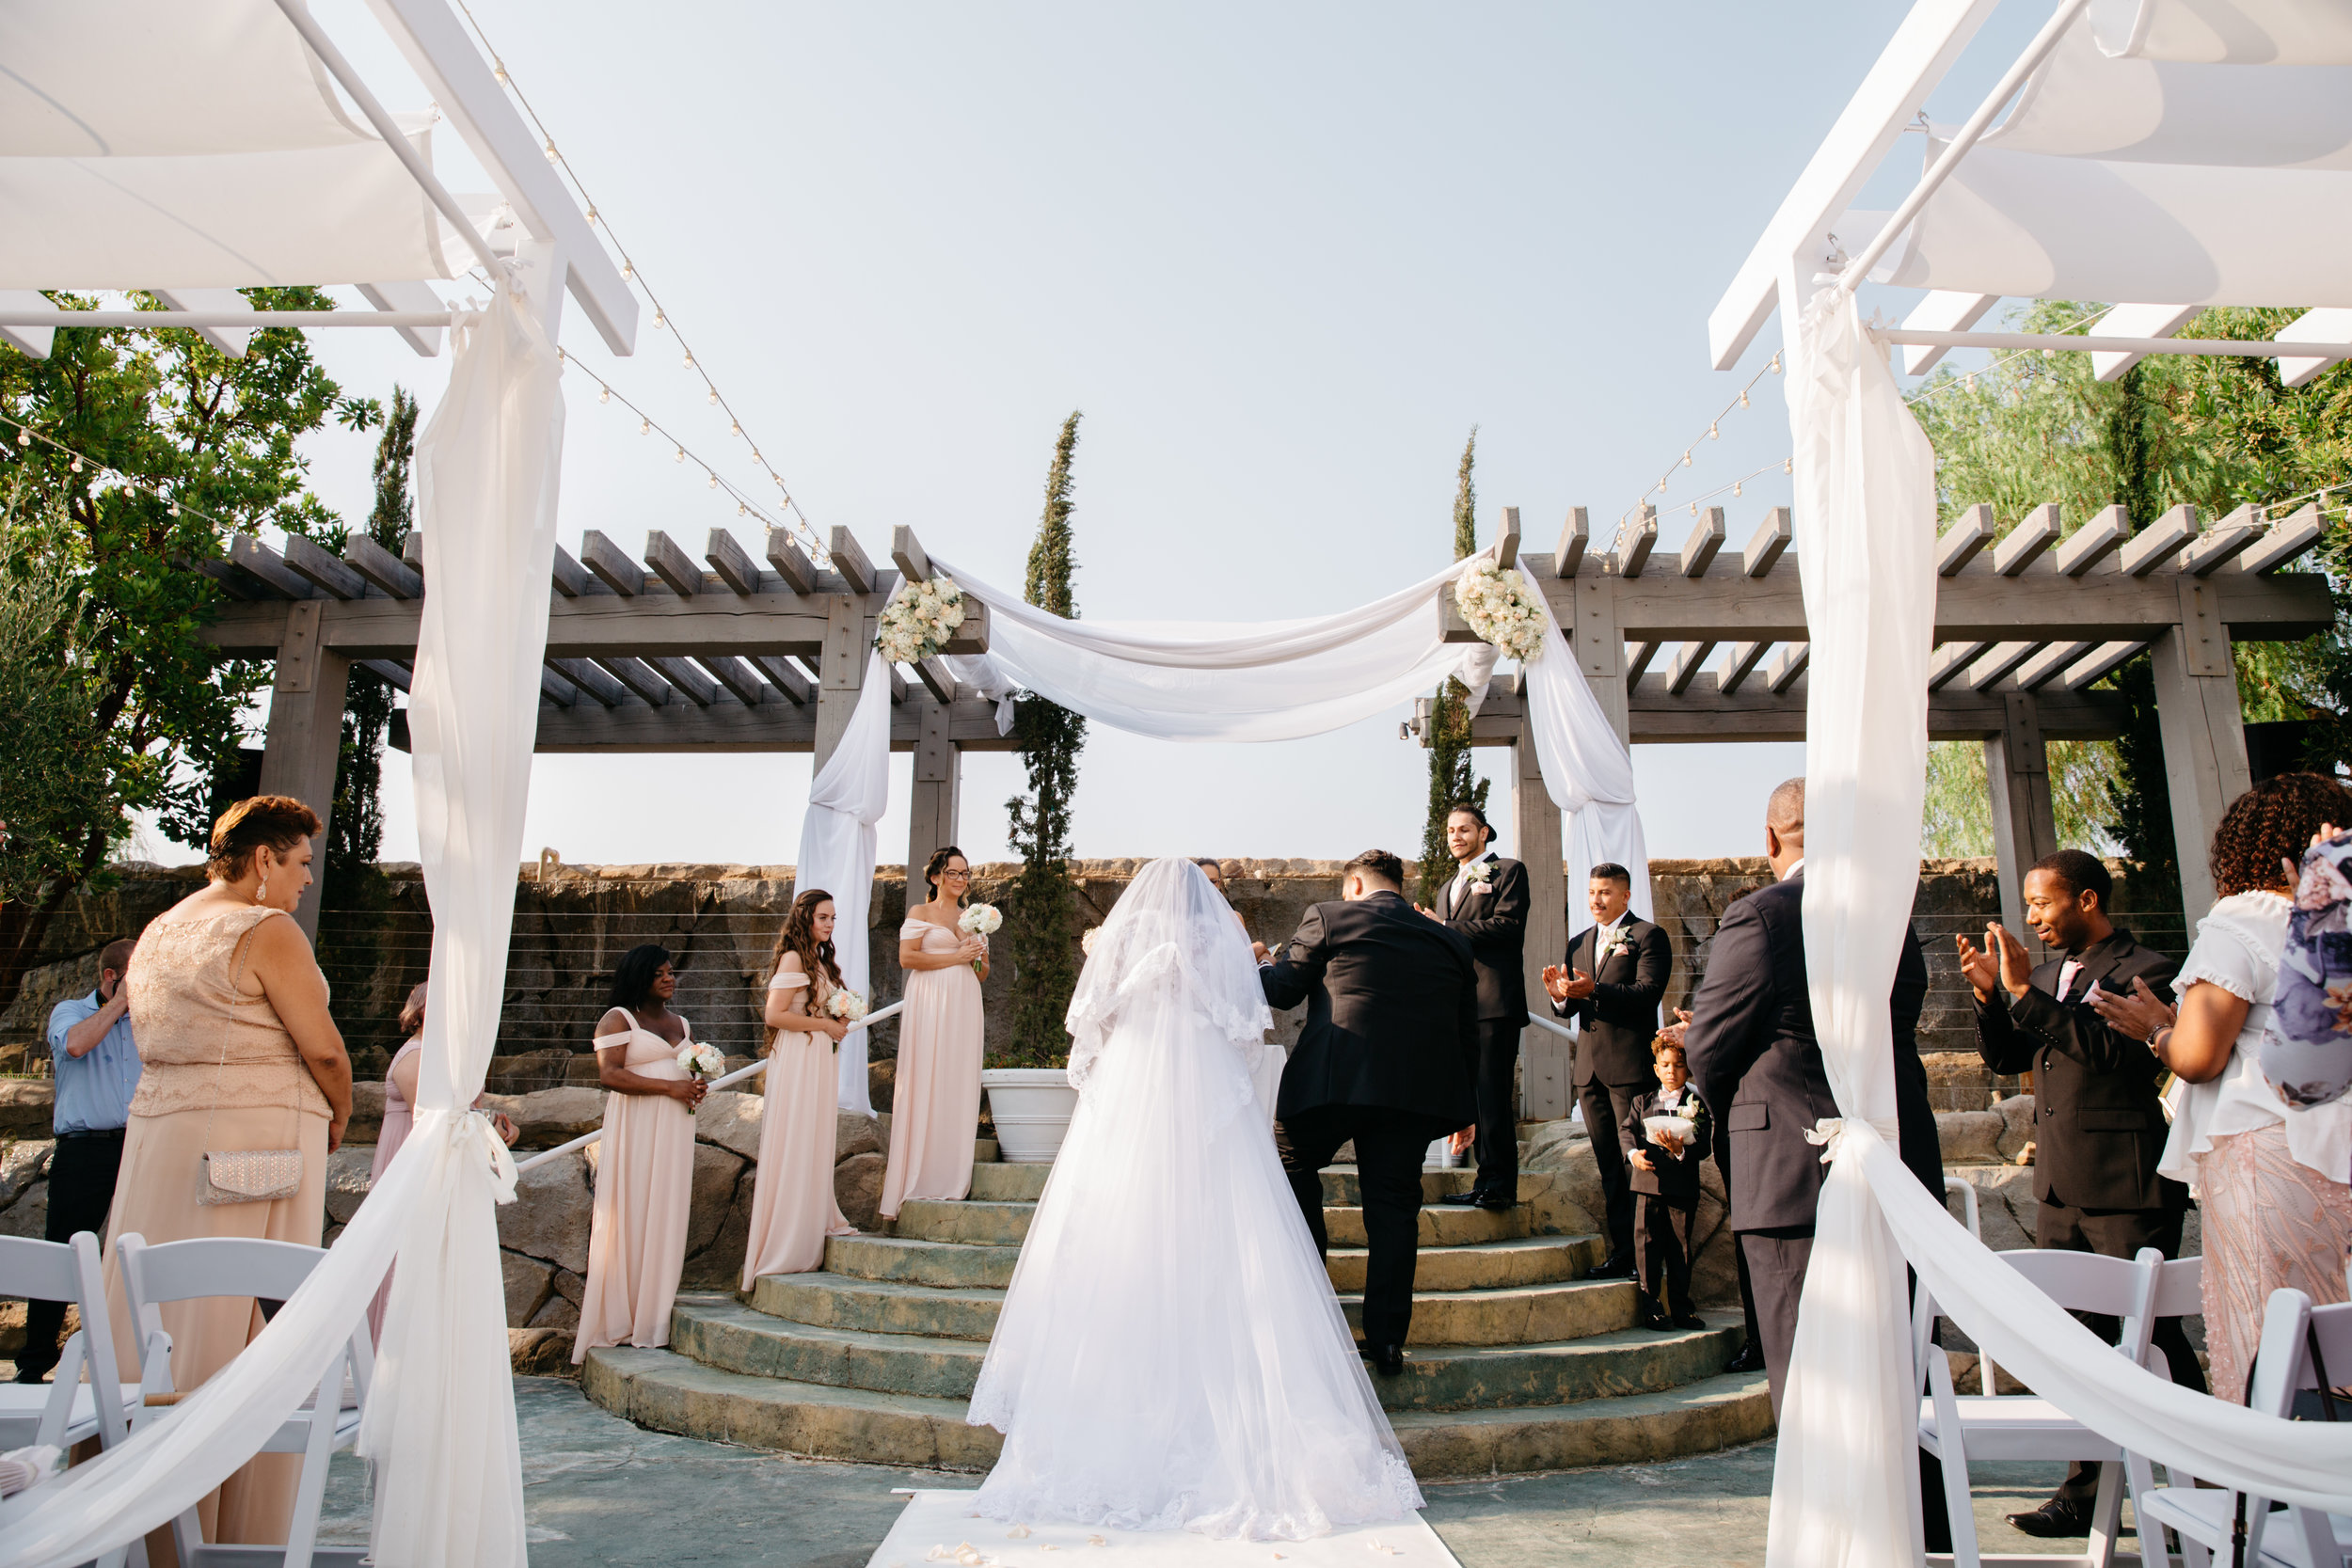 The Vineyard Wedding Jenna Bells and Laces Photography-12.jpg